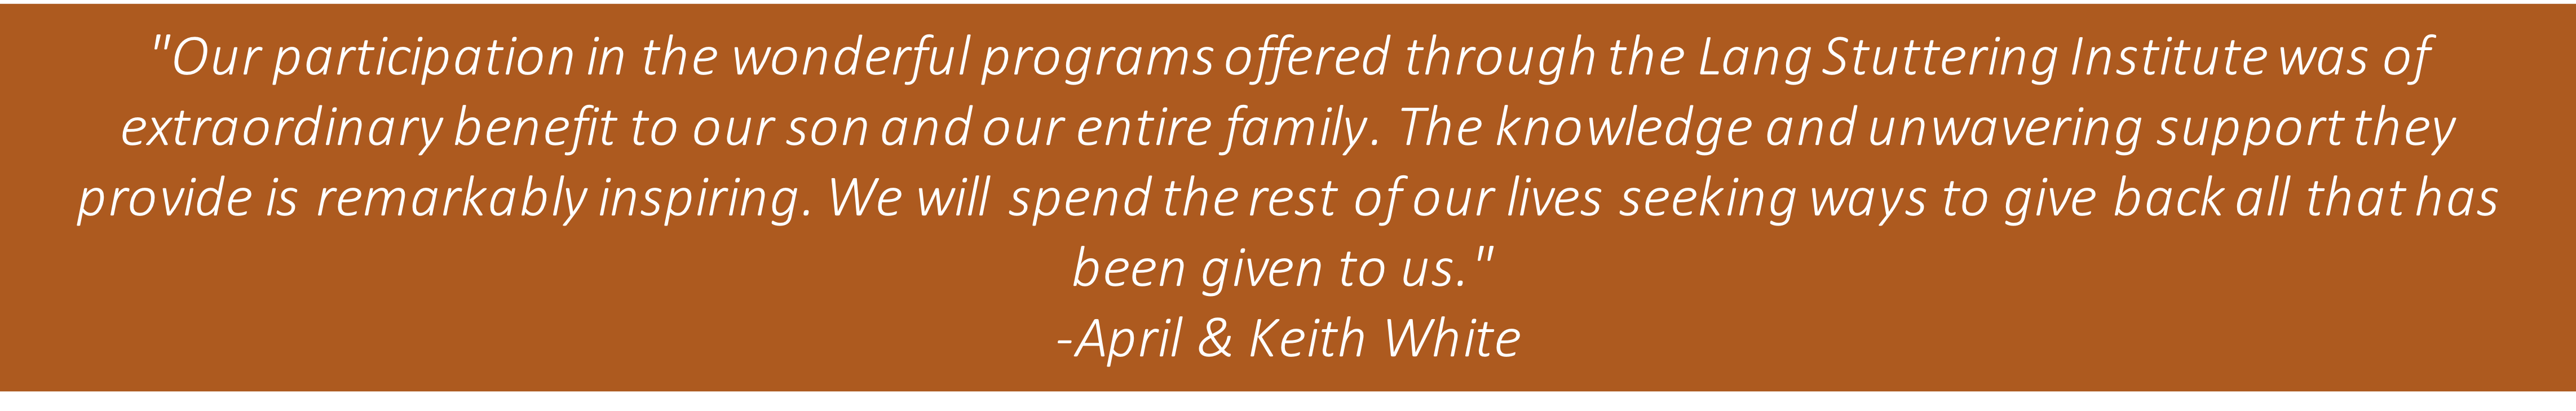 April and Keith White Quote